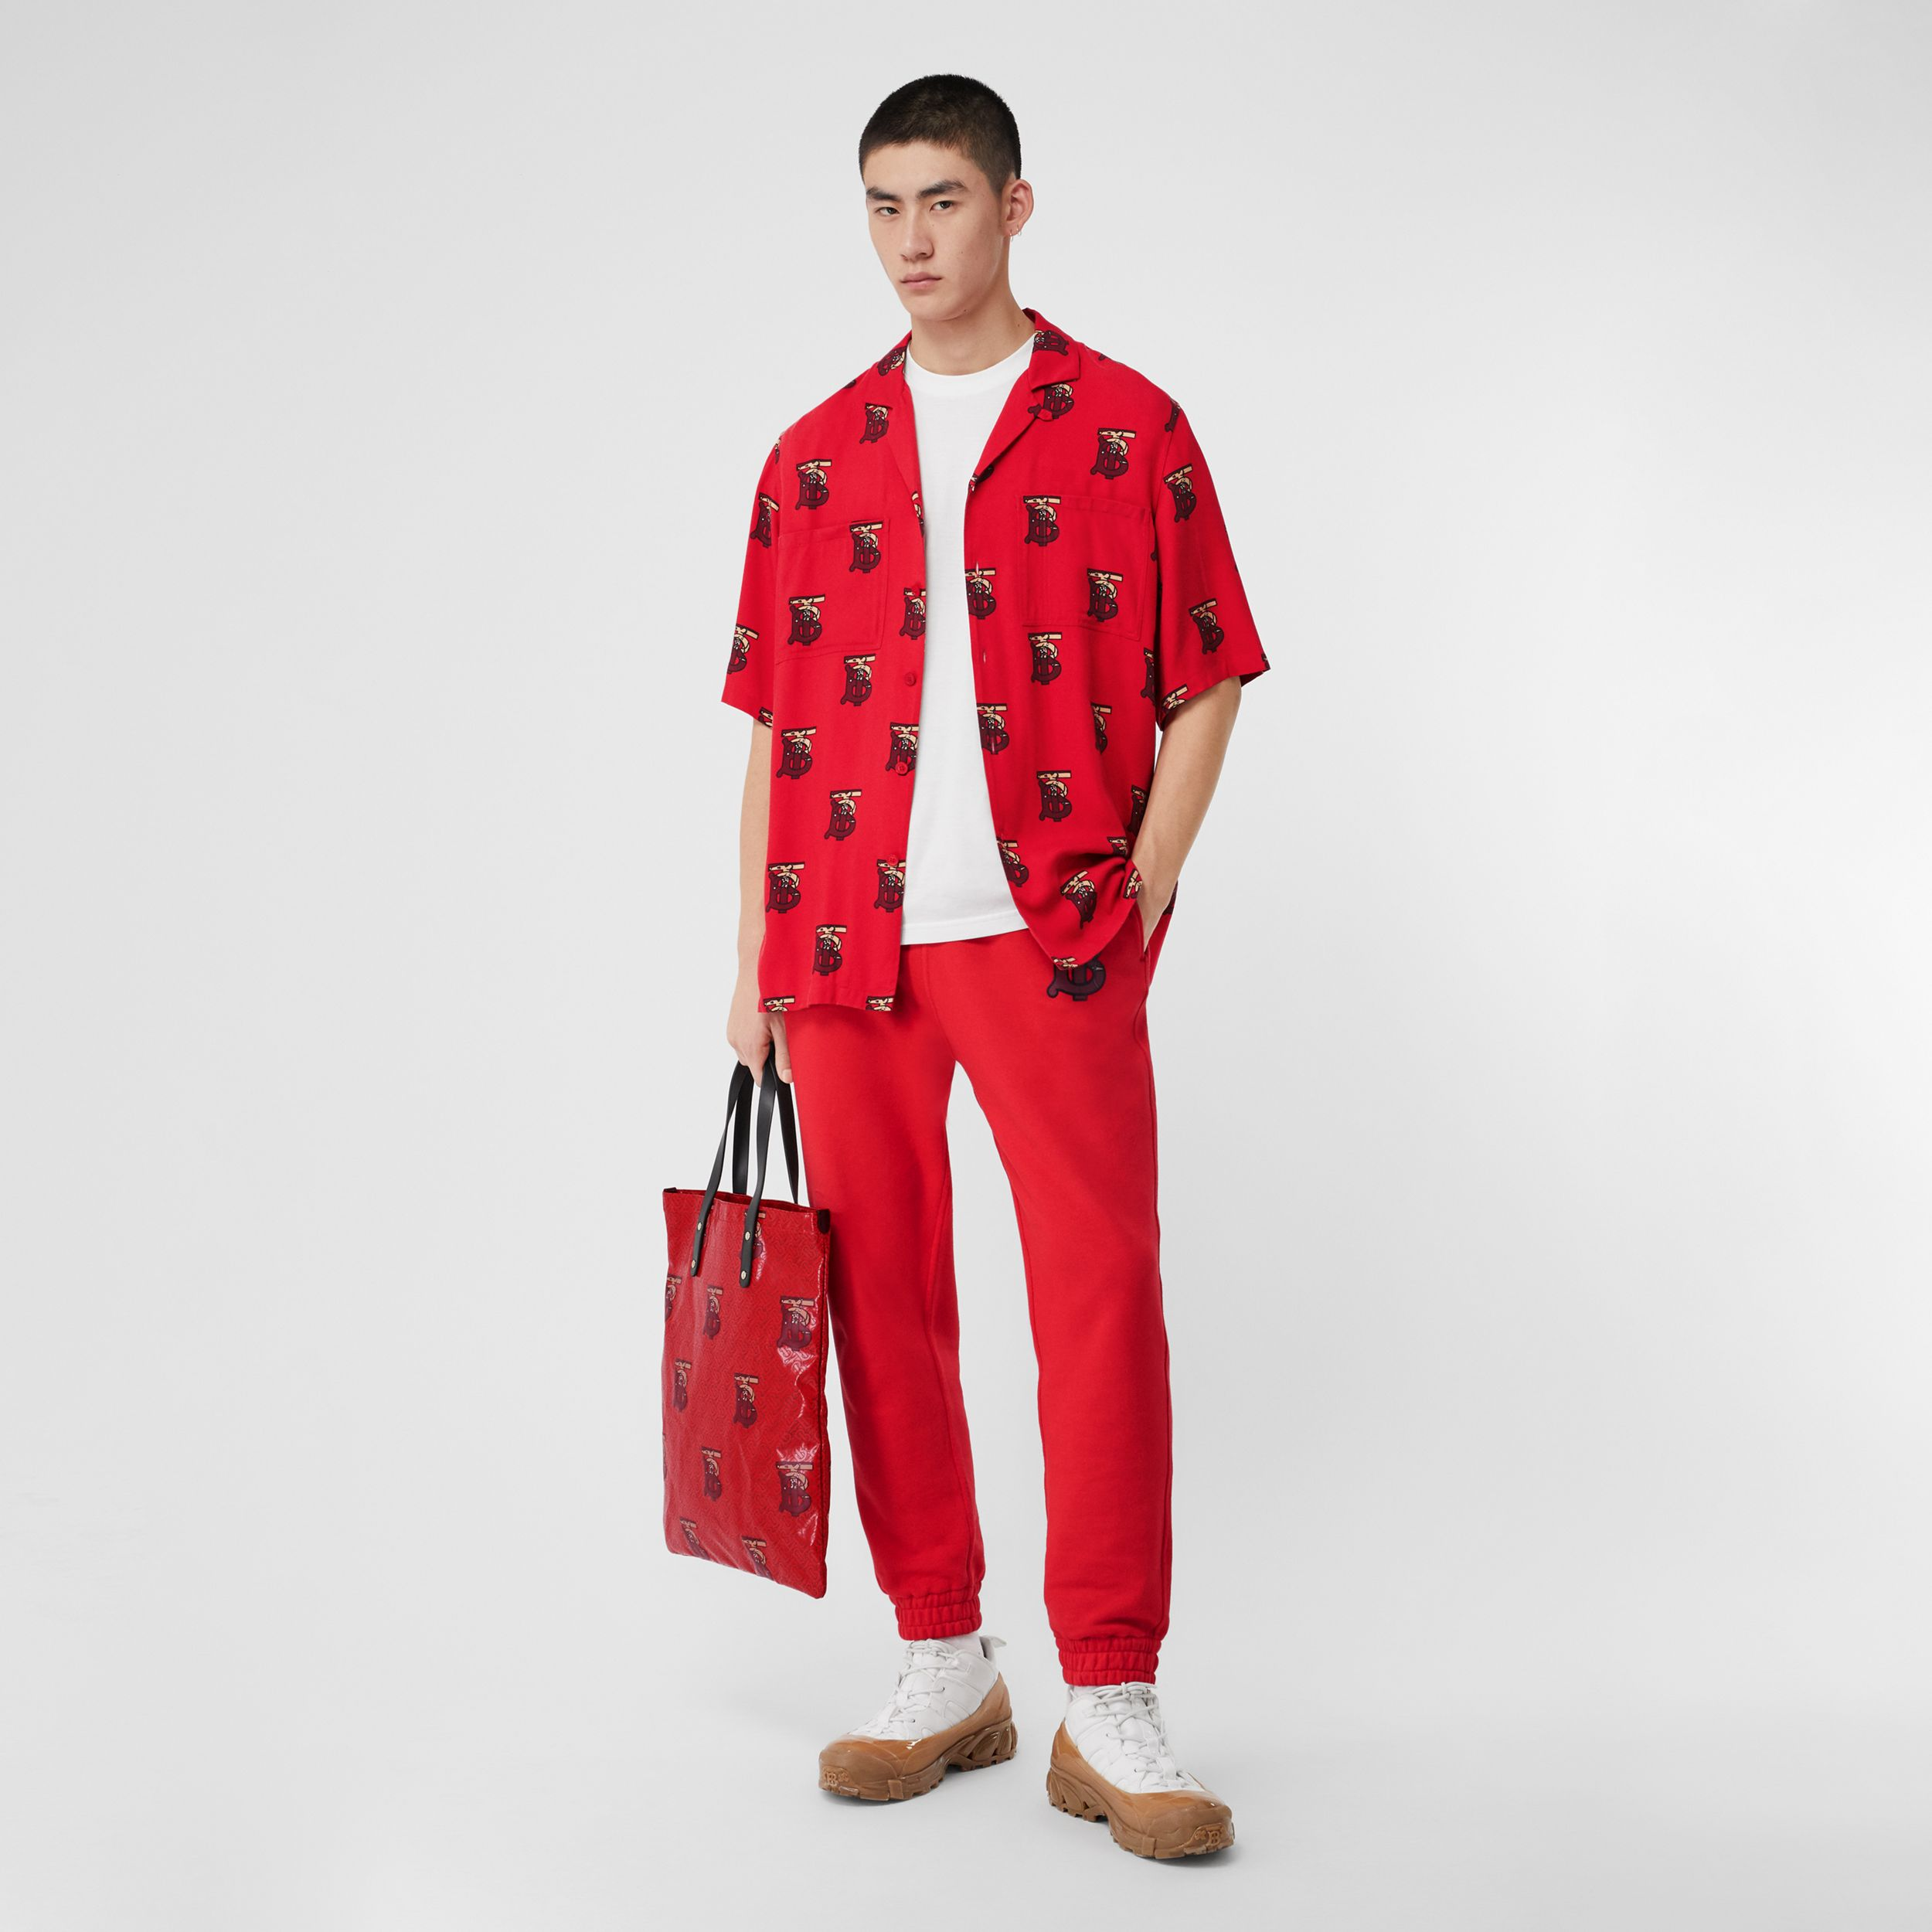 Monogram Motif Cotton Trackpants in Bright Red - Men | Burberry Australia - 1